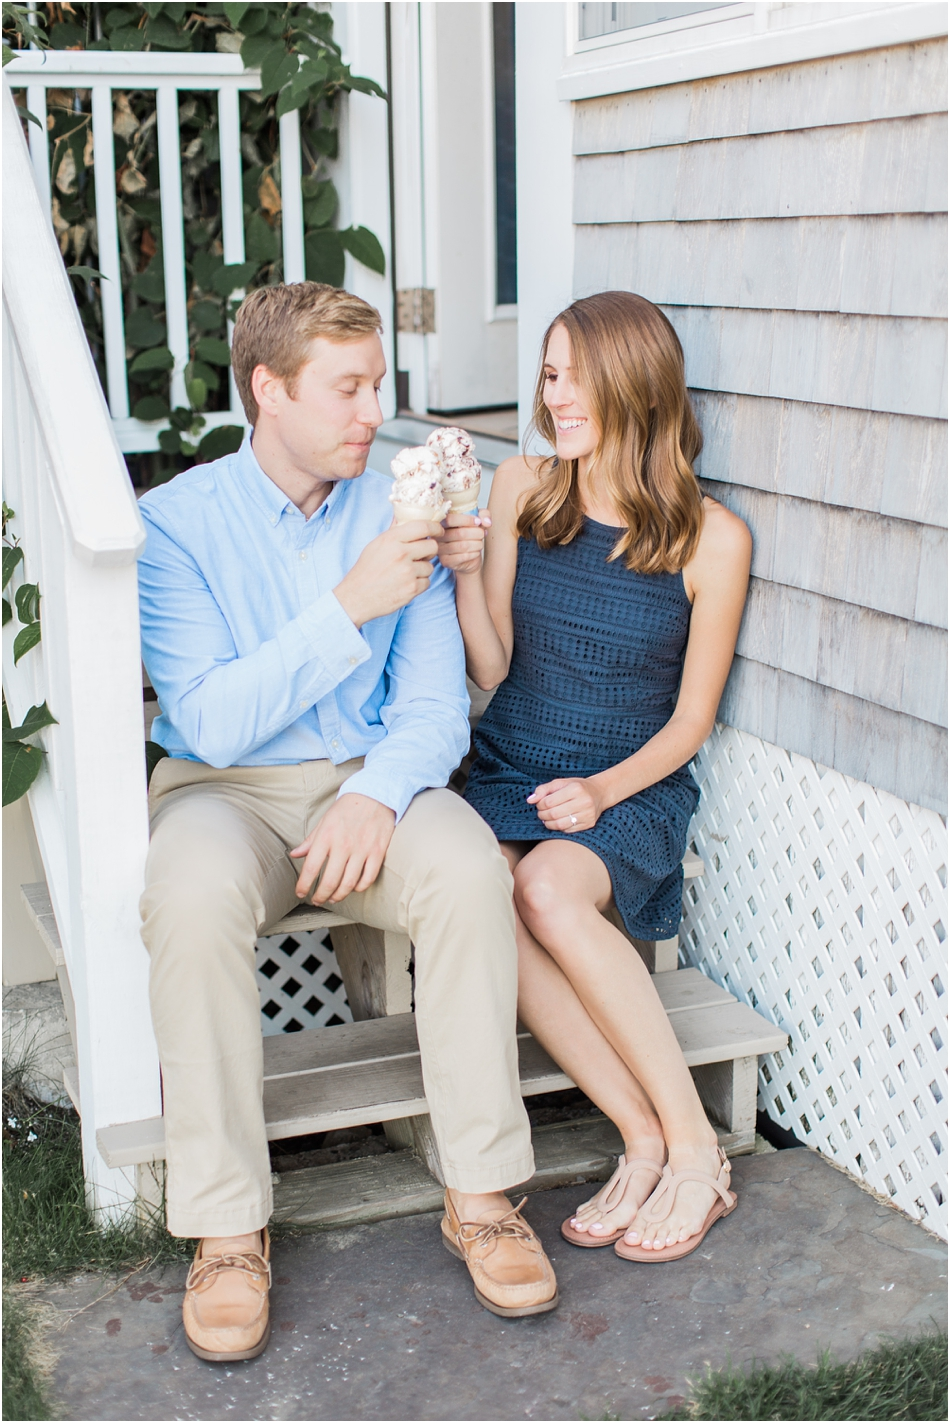 rockport_ma_engagement_kelly_zach_cape_cod_boston_new_england_wedding_photographer_Meredith_Jane_Photography_photo_2314.jpg